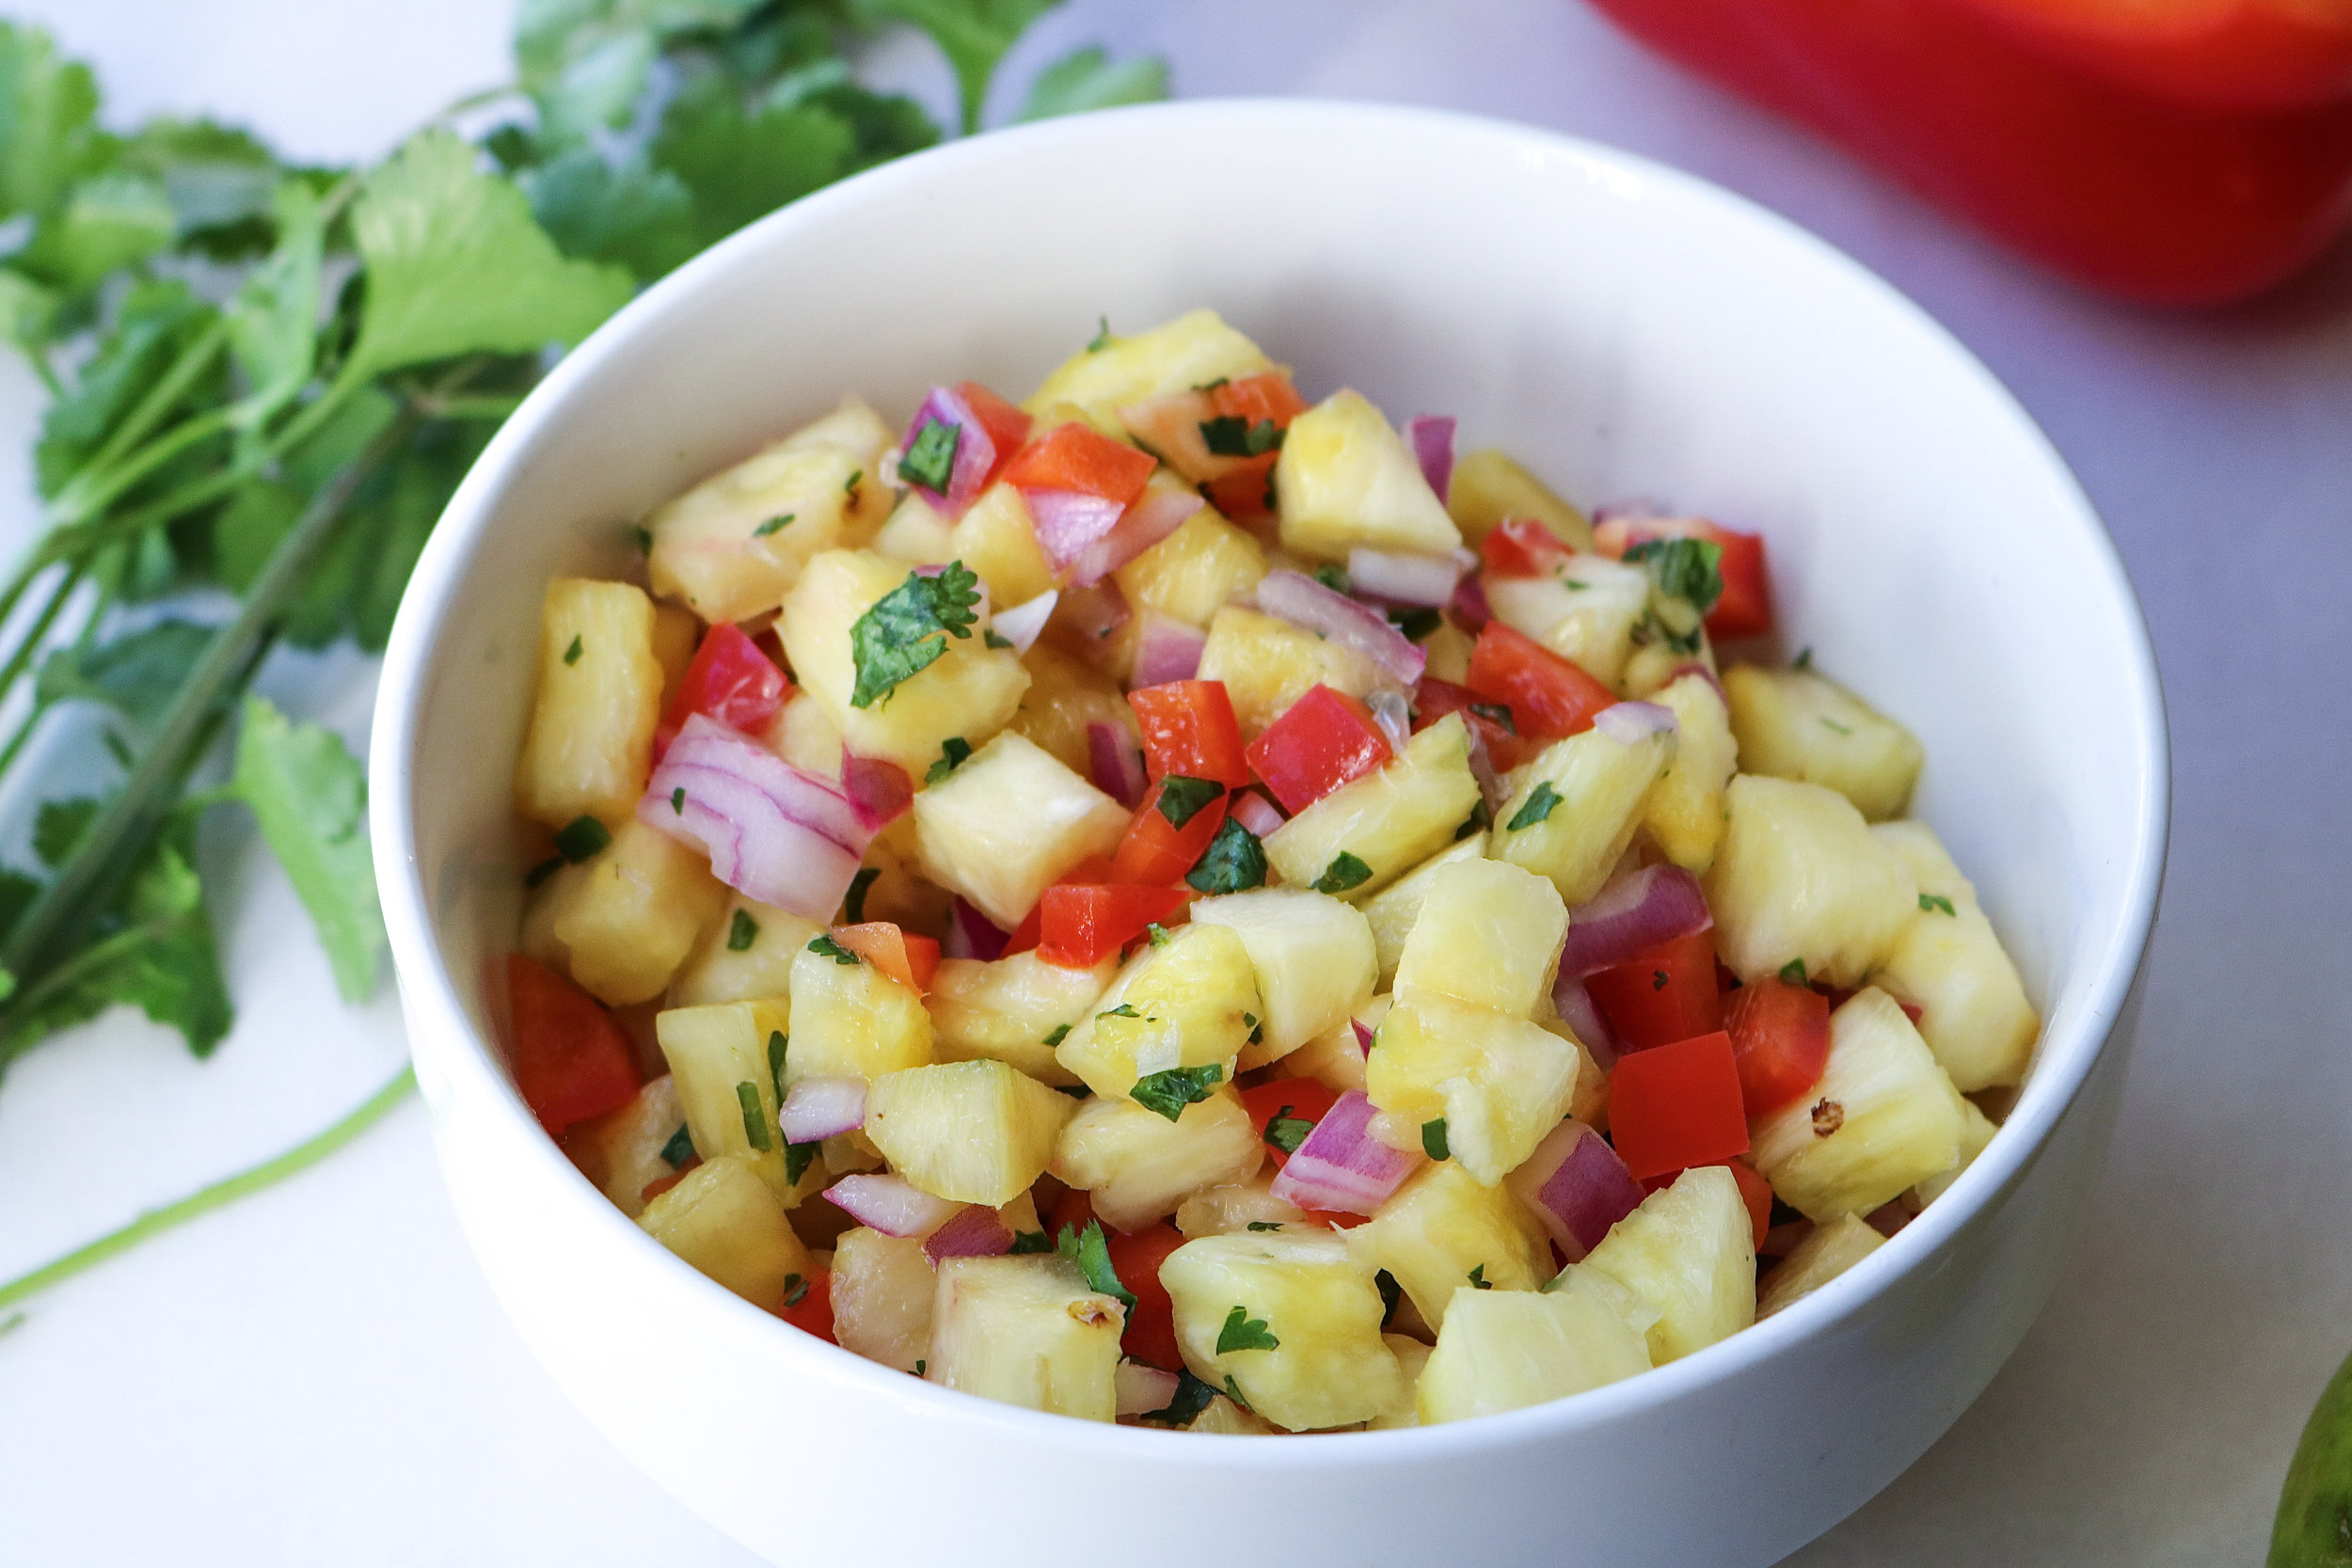 This easy homemade salsa is perfect for tacos, burrito bowls, or on its own as a snack with chips!